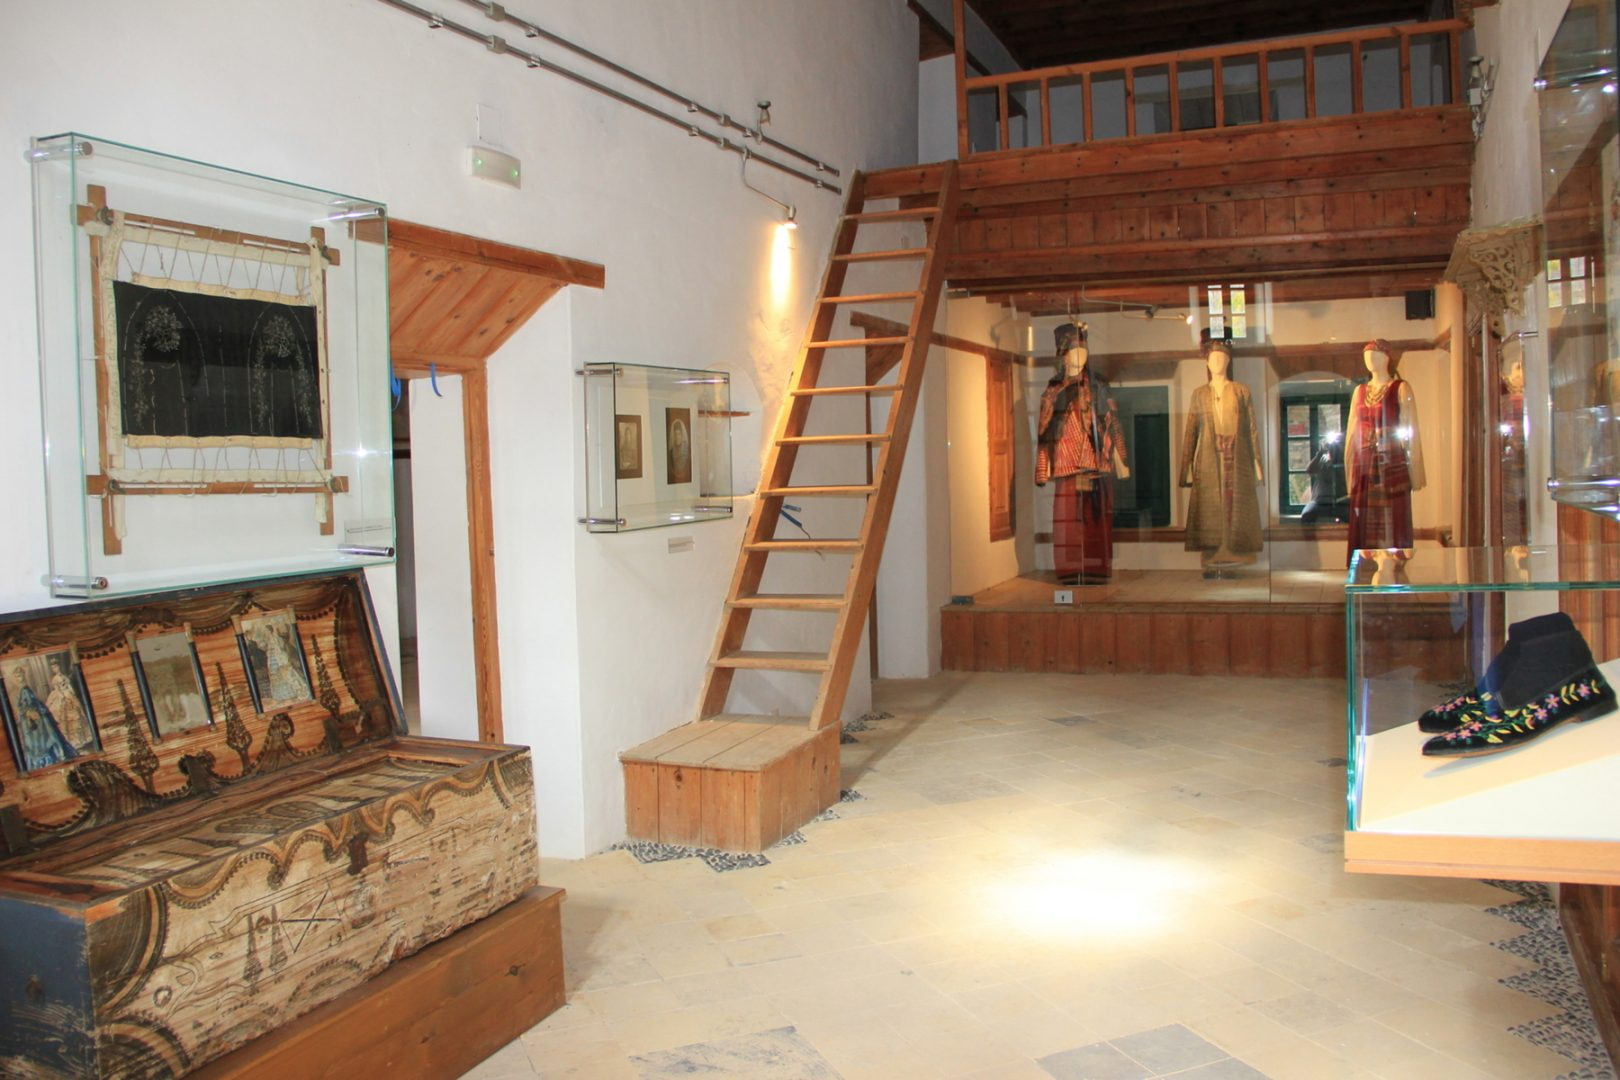 Symi Archaeological Museum